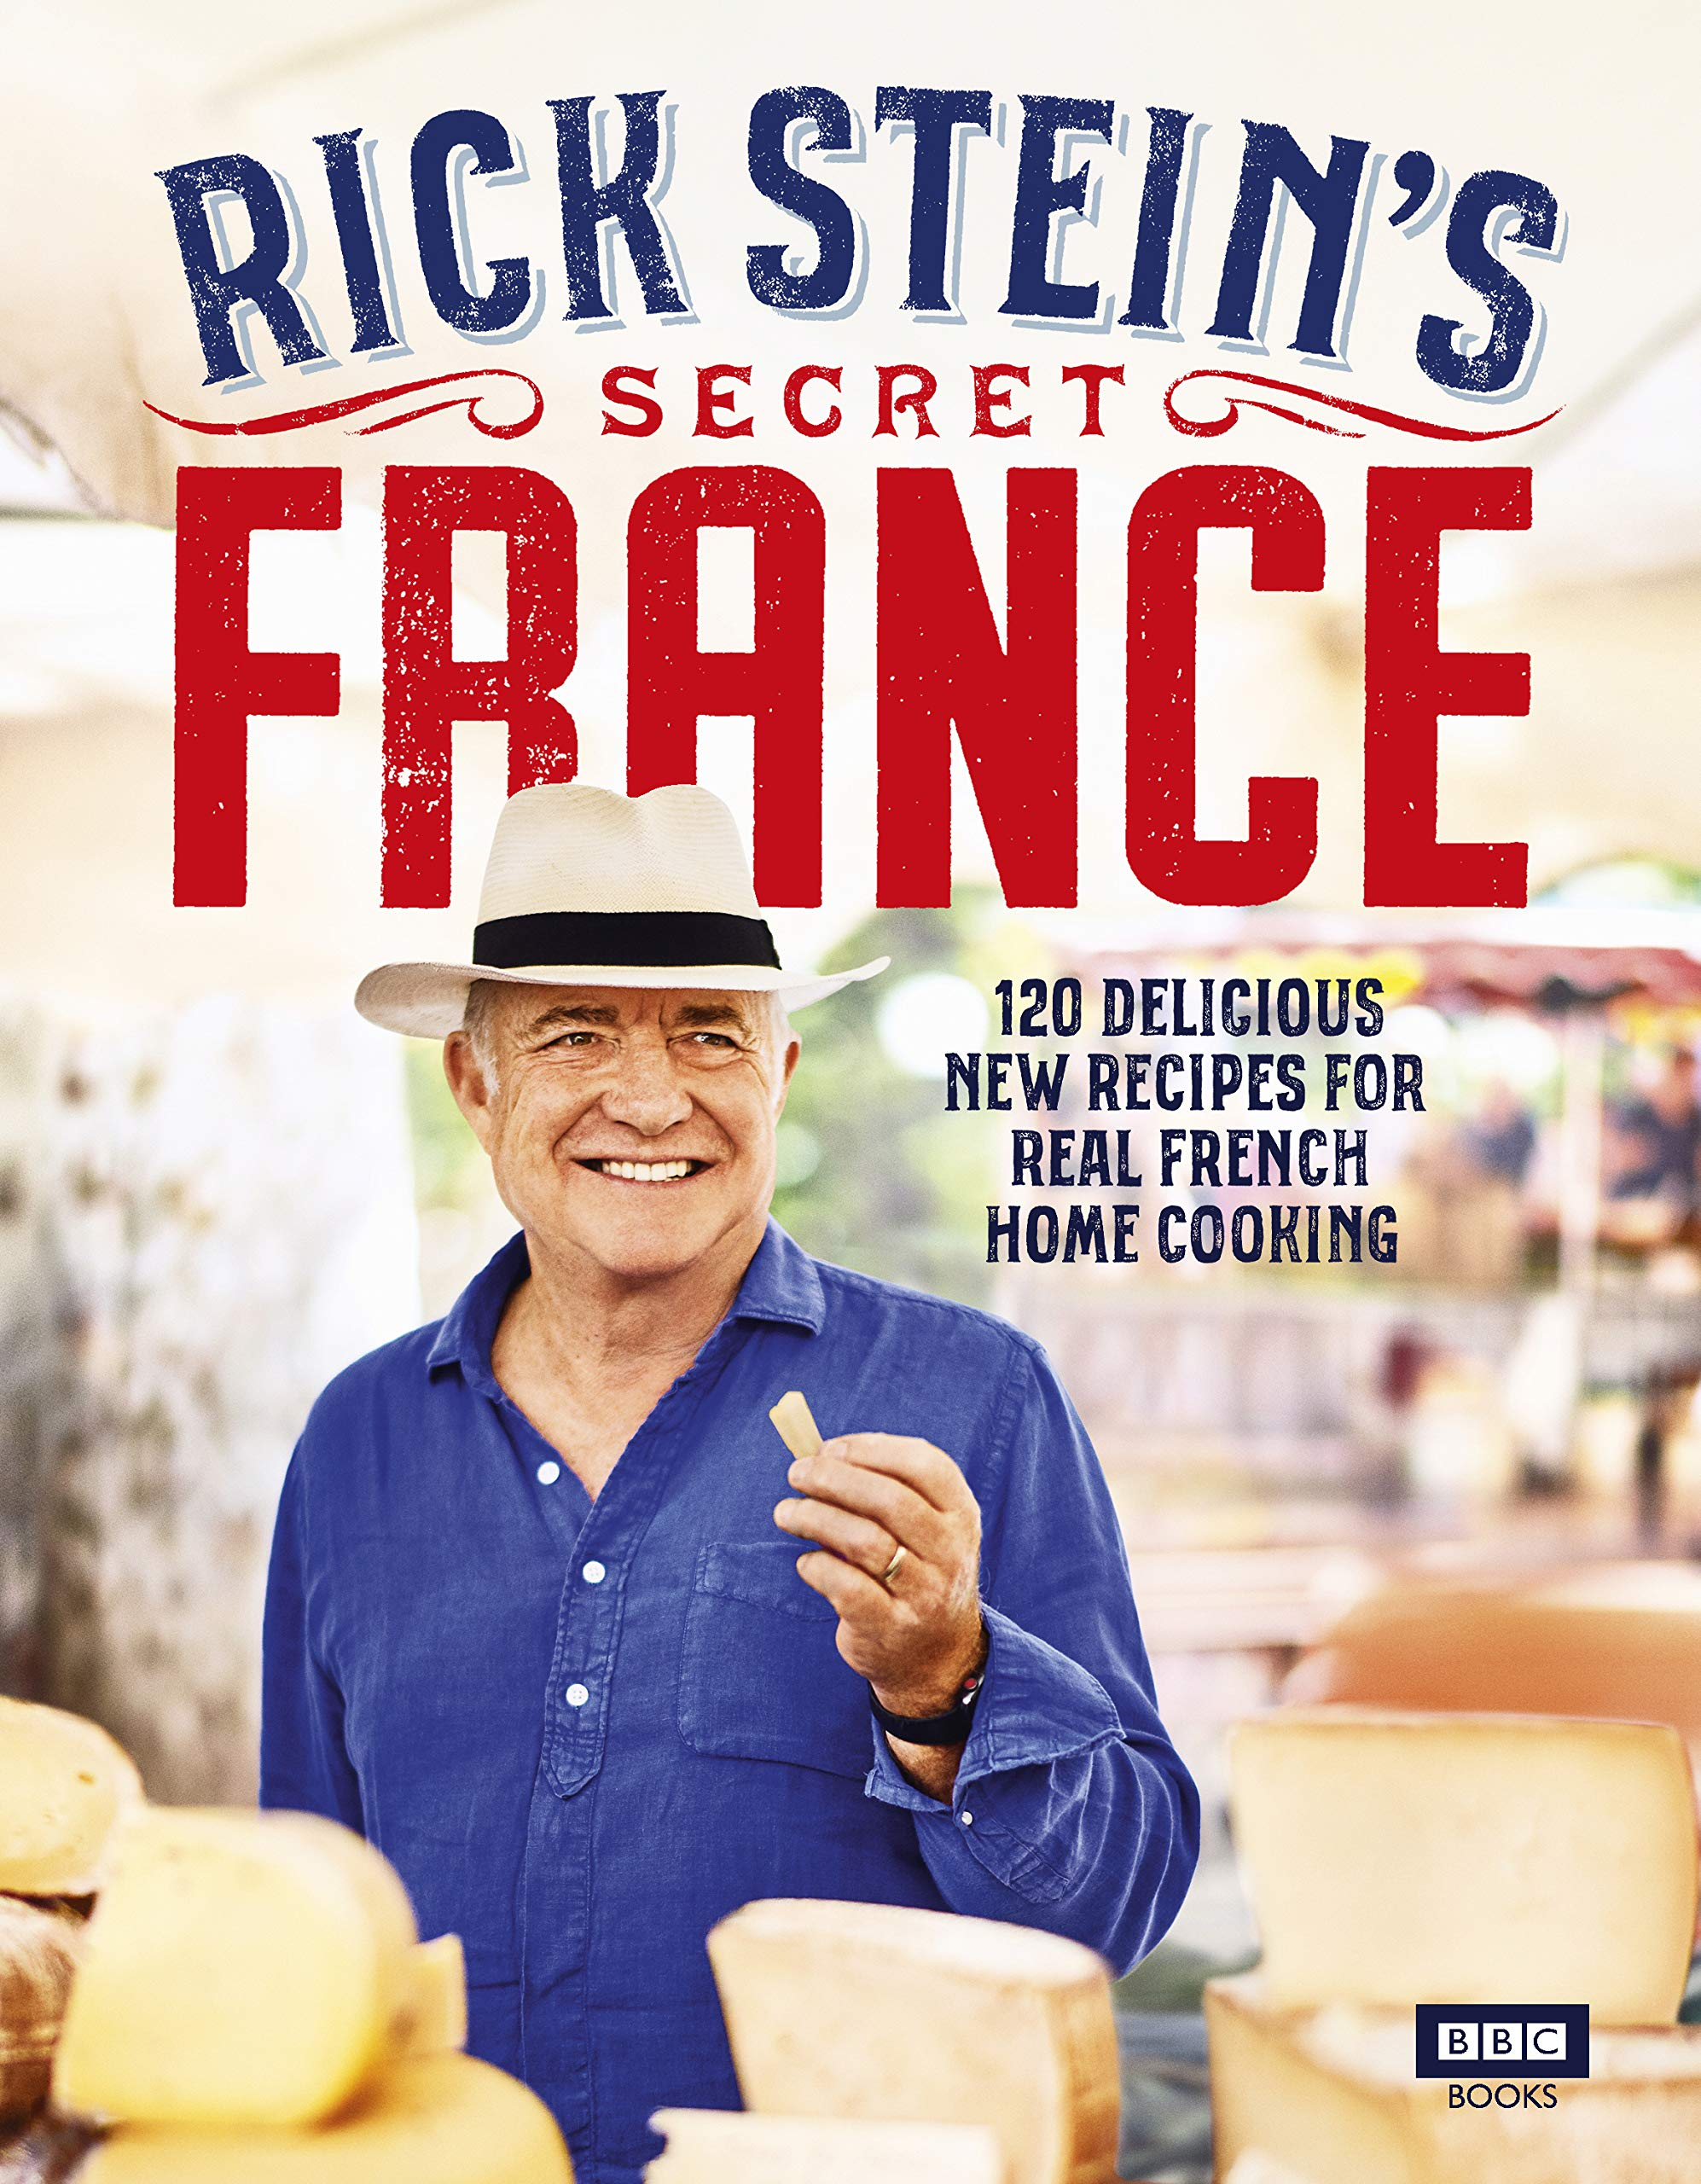 Rick Stein's new book!